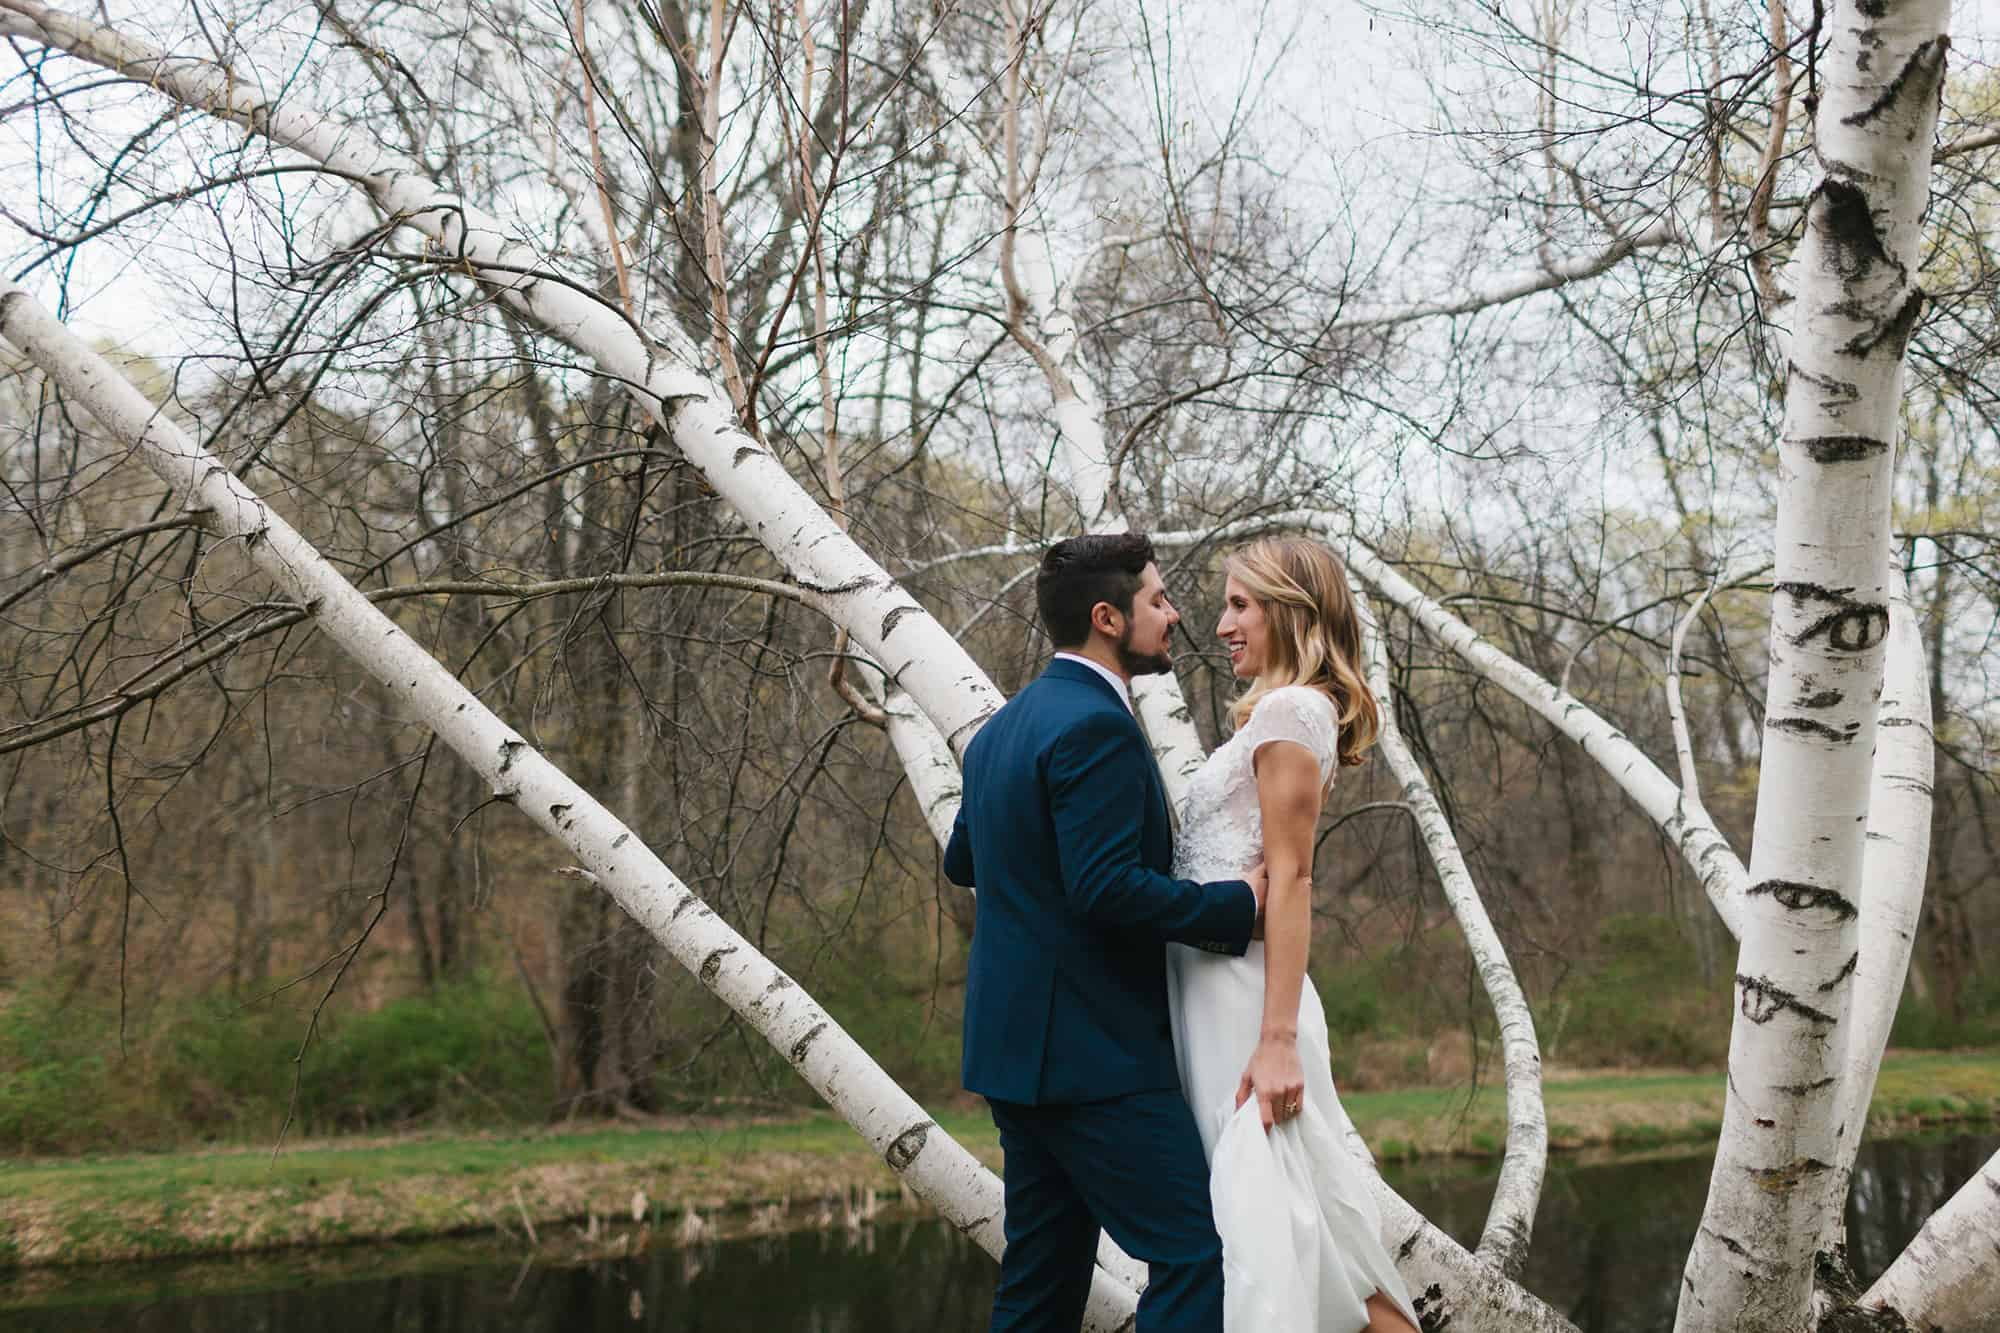 Waterloo Village wedding venue in New Jersey by Kate Lamb of Wild in Love Photo